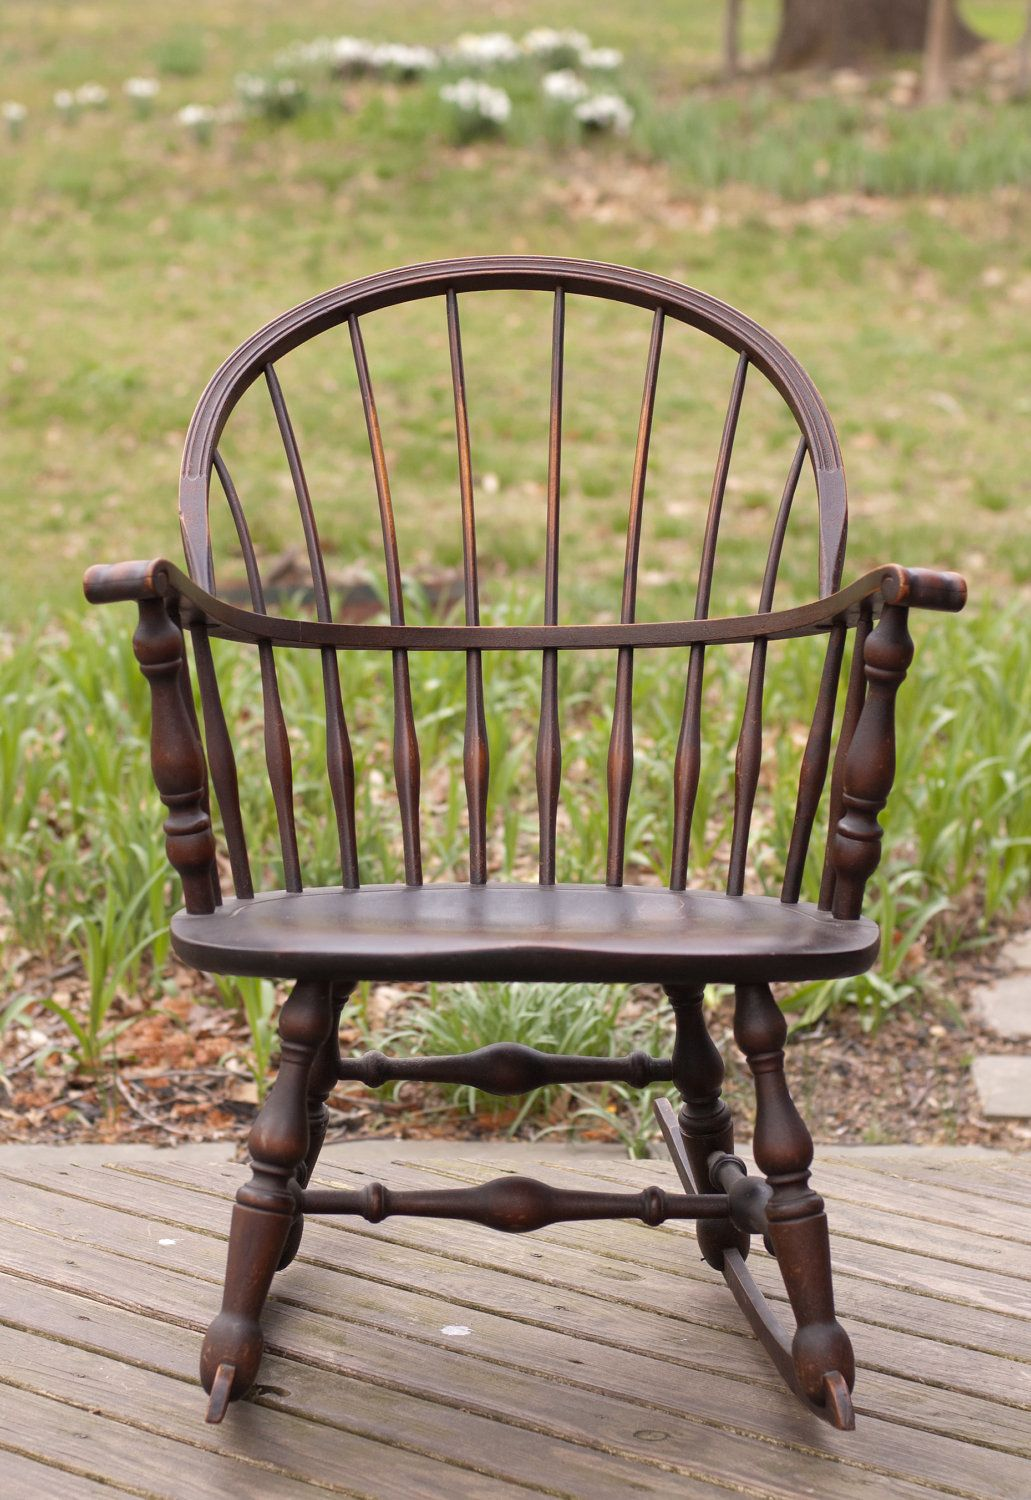 Stone Windsor Rocking Rocker Chair